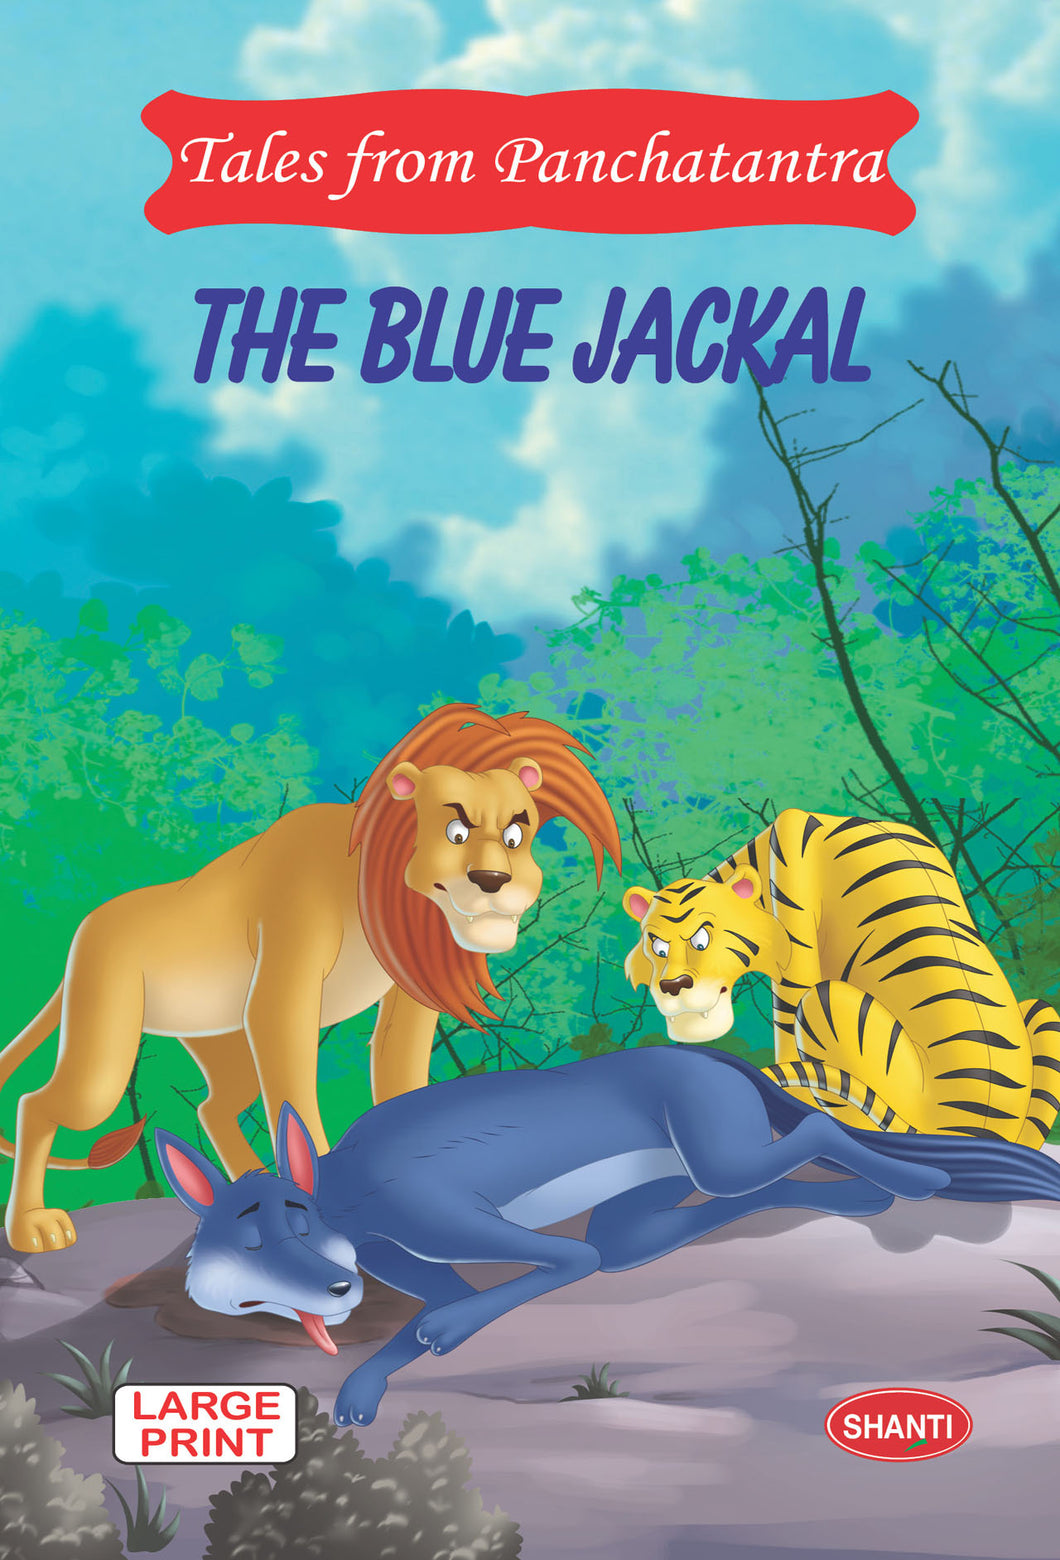 panchatantra story books-Tales from Panchtantra - The Blue Jackal (English)